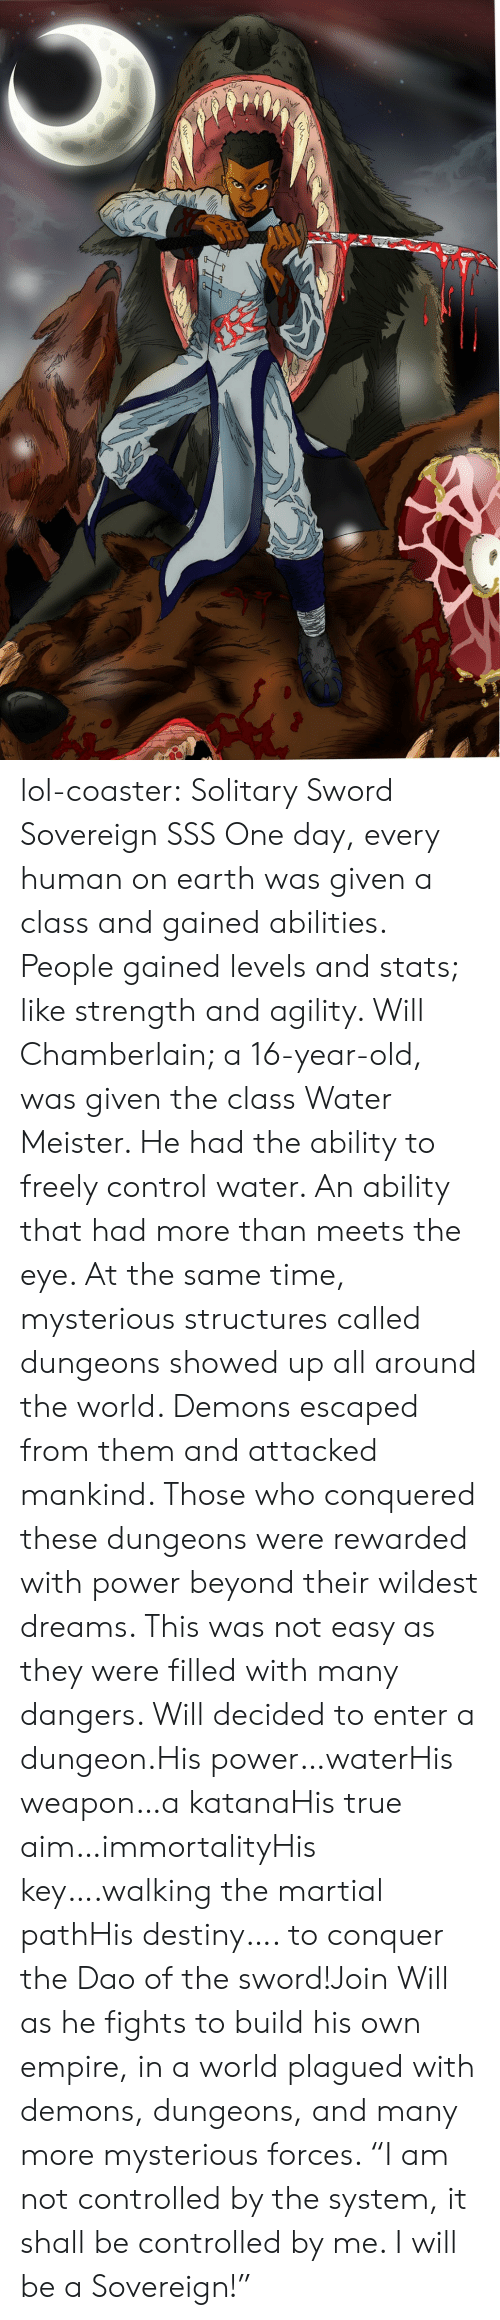 "dungeon: lol-coaster: Solitary Sword Sovereign SSS   One day, every human on earth was given a class and gained abilities. People gained levels and stats; like strength and agility. Will Chamberlain; a 16-year-old, was given the class Water Meister. He had the ability to freely control water. An ability that had more than meets the eye. At the same time, mysterious structures called dungeons showed up all around the world. Demons escaped from them and attacked mankind. Those who conquered these dungeons were rewarded with power beyond their wildest dreams. This was not easy as they were filled with many dangers. Will decided to enter a dungeon.His power…waterHis weapon…a katanaHis true aim…immortalityHis key….walking the martial pathHis destiny…. to conquer the Dao of the sword!Join Will as he fights to build his own empire, in a world plagued with demons, dungeons, and many more mysterious forces. ""I am not controlled by the system, it shall be controlled by me. I will be a Sovereign!"""